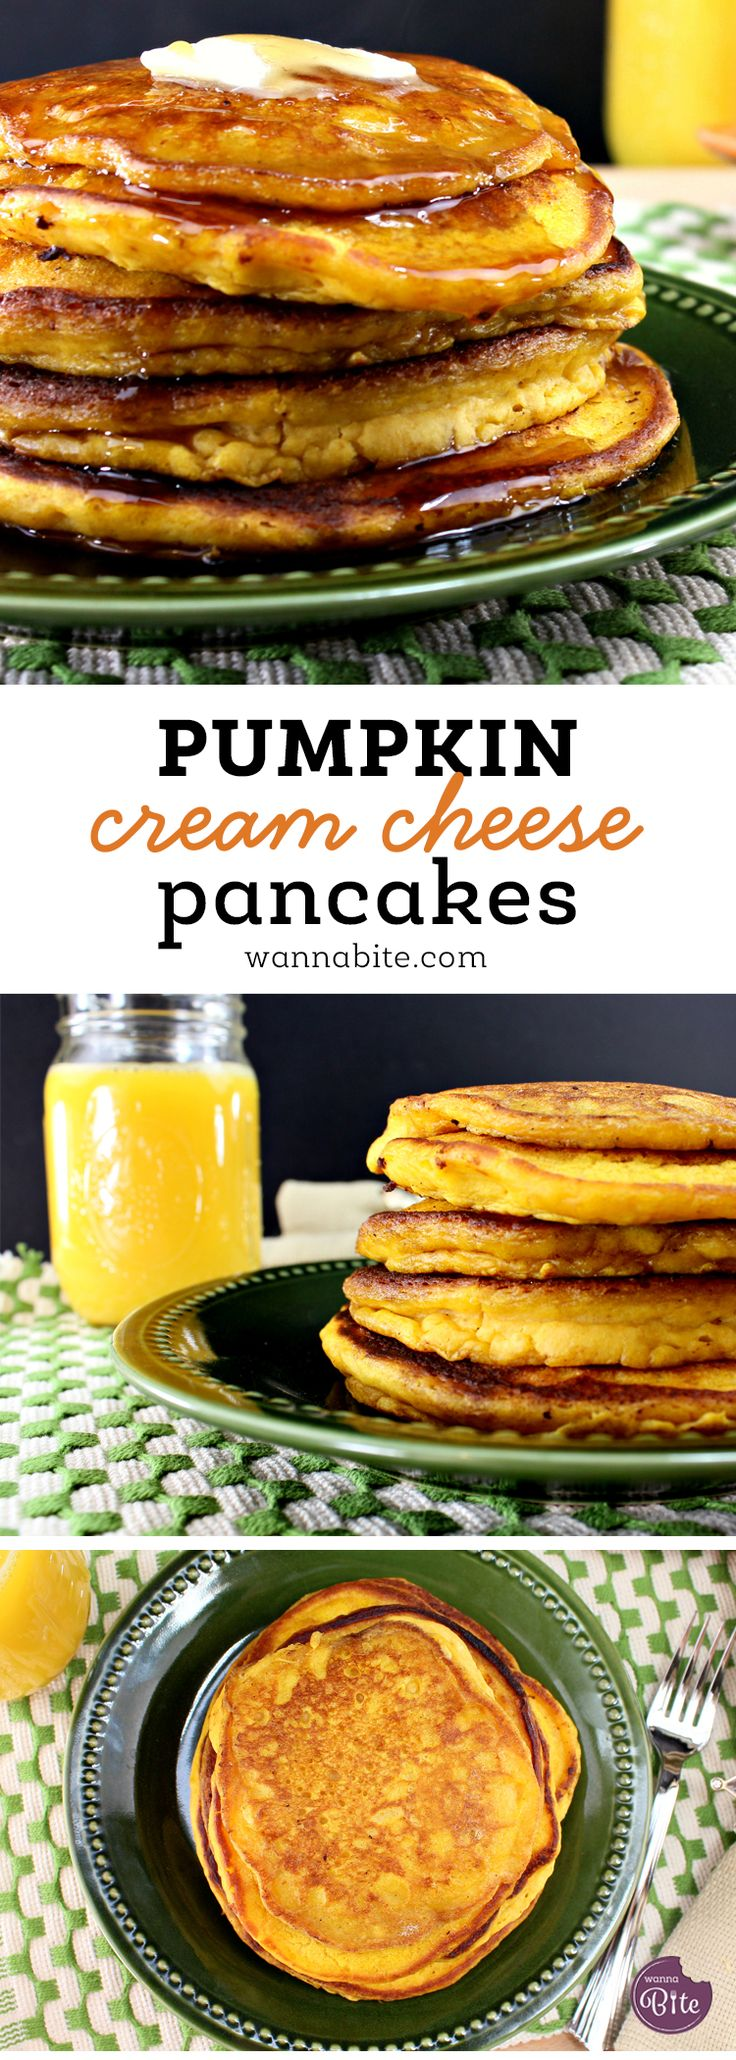 You must try these pumpkin cream cheese pancakes! Moist and creamy these are sure to impress!! via @Wannabite